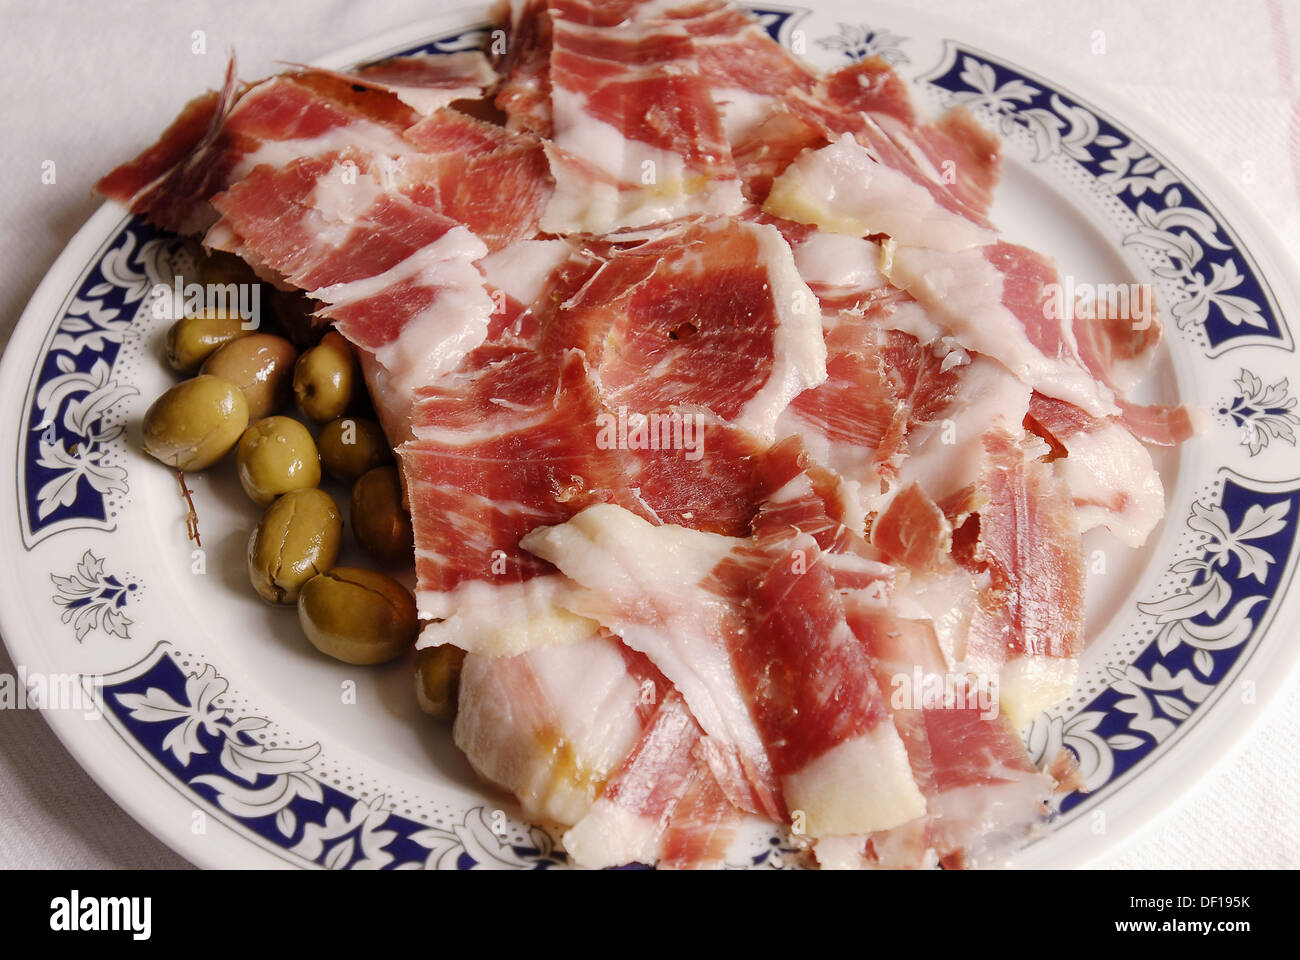 Jamon de Jabugo. Spanish ham is usually served sliced tissue-paper thin. Mediterranean Foods. Spain. - Stock Image